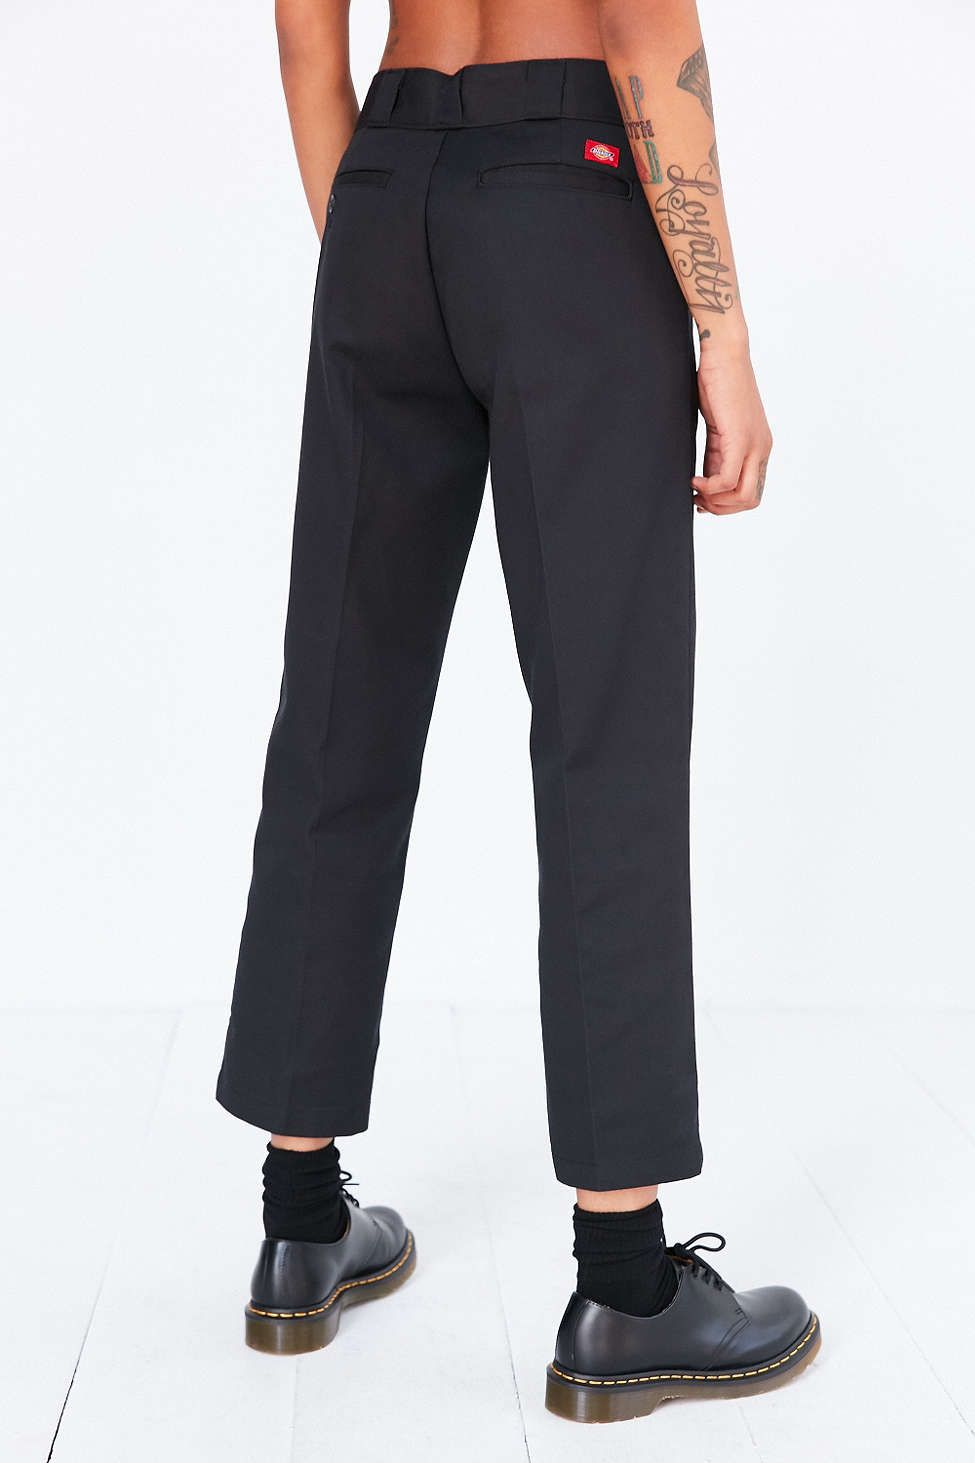 f50276bfdd0 Dickies High-Rise Work Pant - Urban Outfitters Dickies Pants